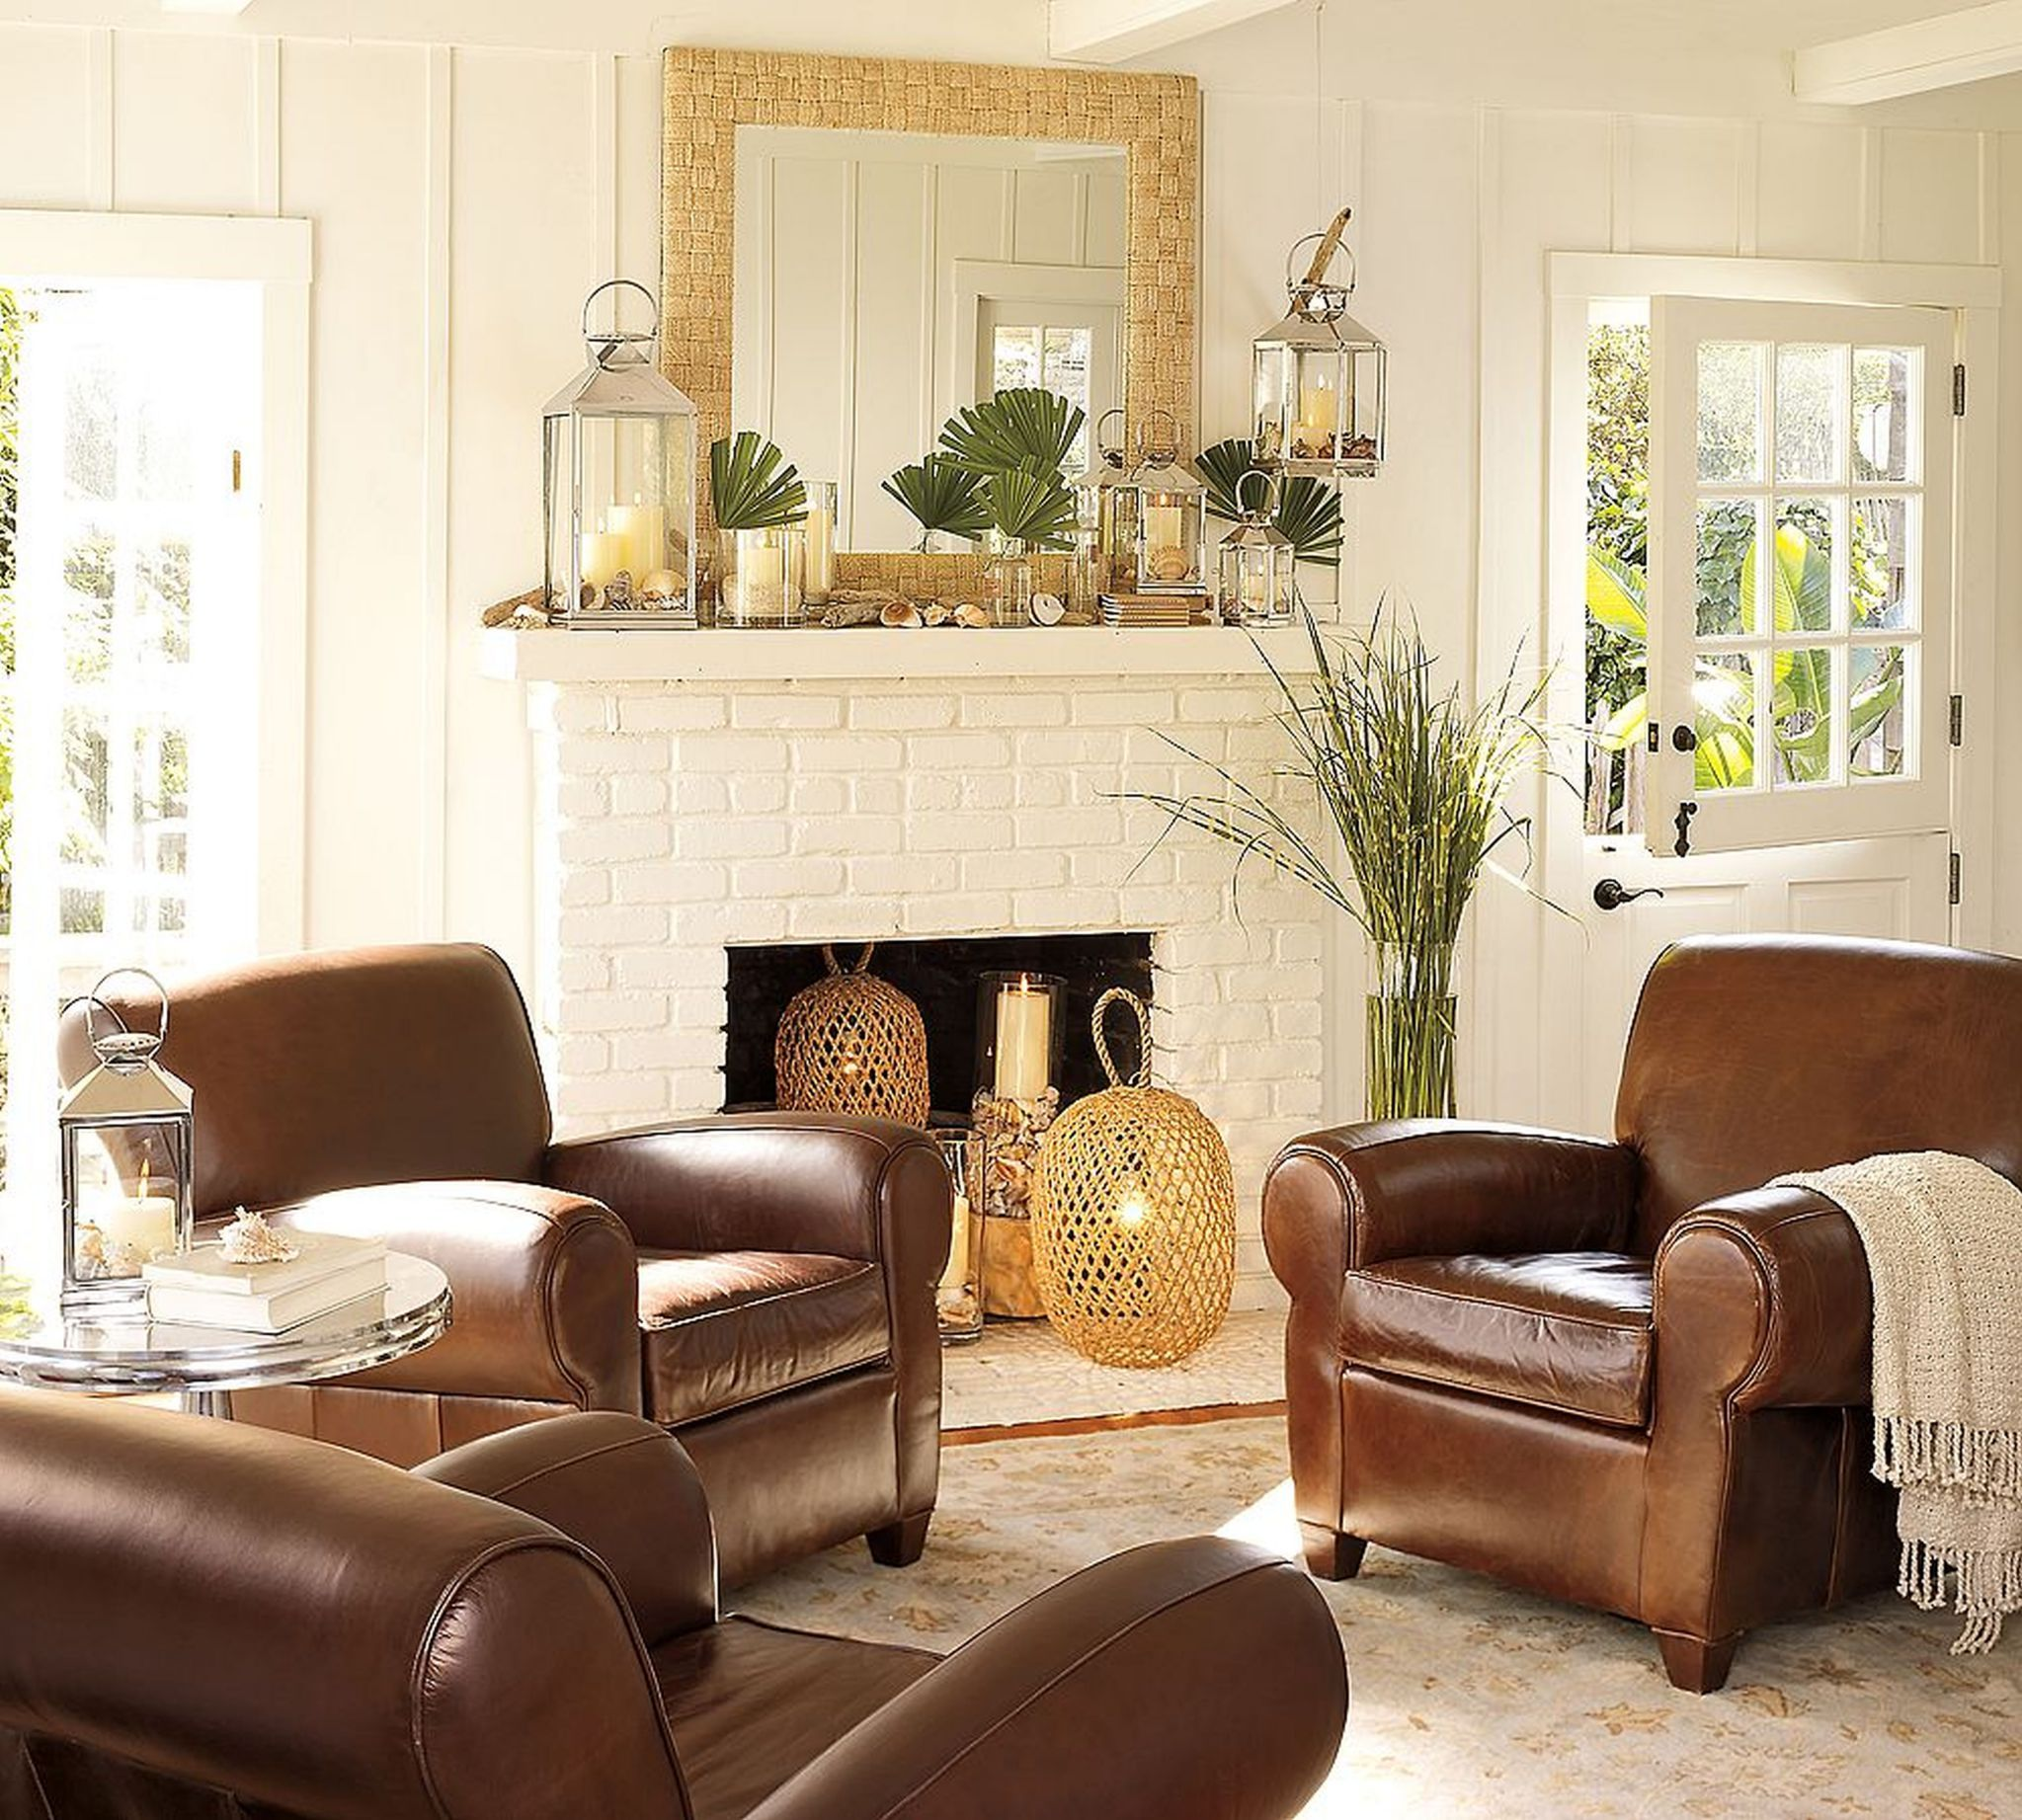 Superb How To Get The Best Deal On Pottery Barn Living Room Furniture    Https://midcityeast.com/how To Get The Best Deal On Pottery Barn Living Room  Furniture/